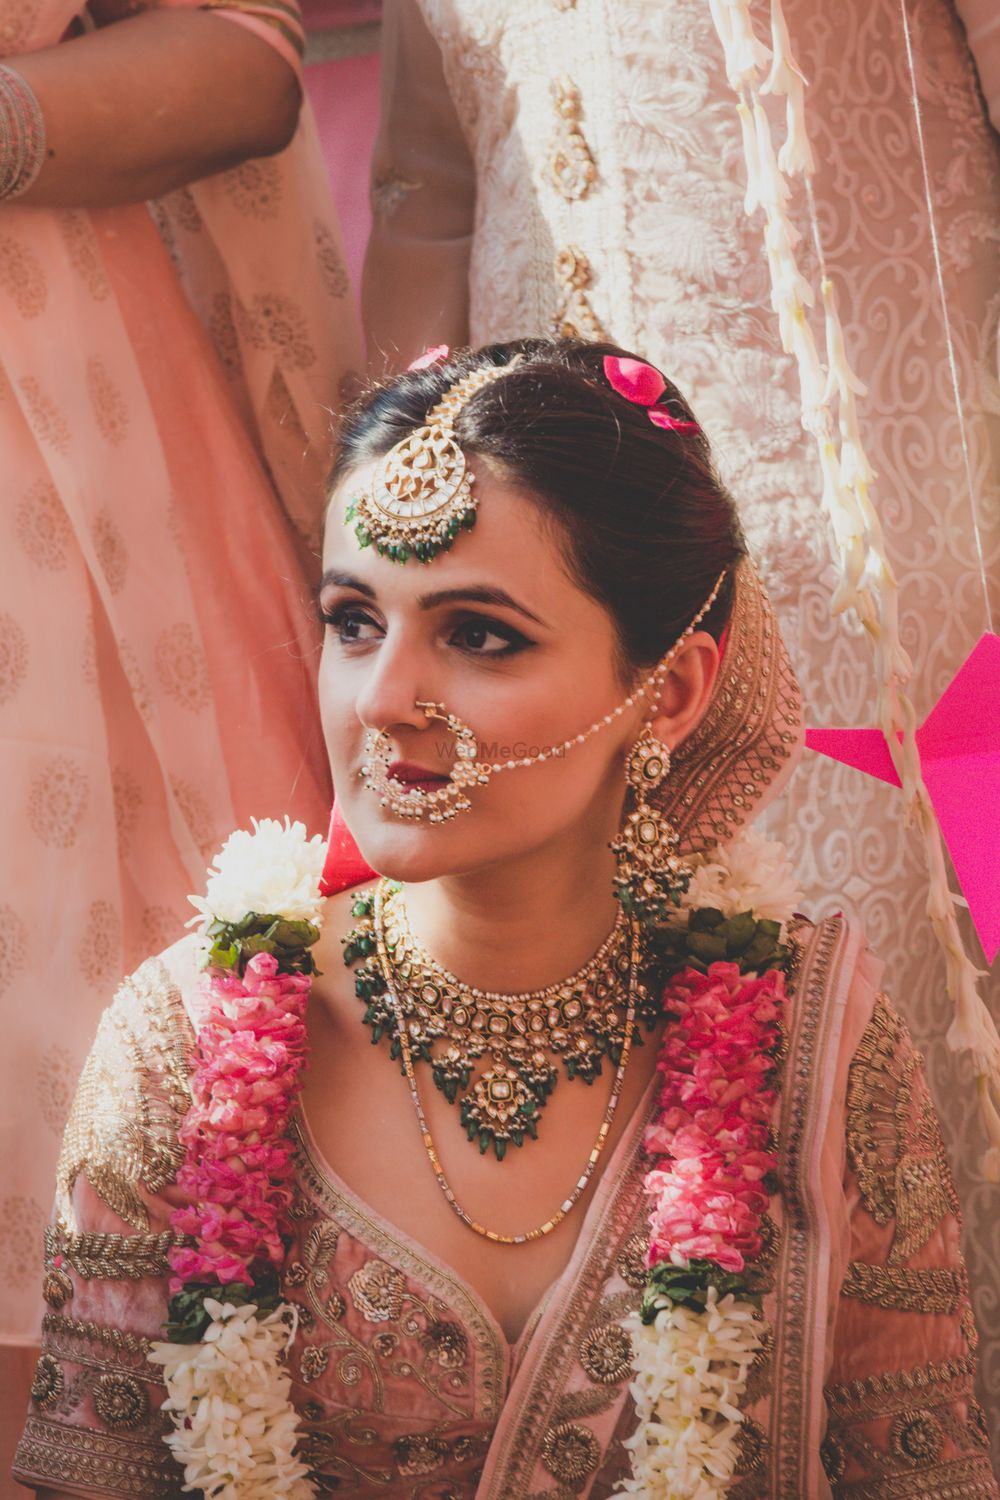 Photo of bridal jewellery with green beads and a nath